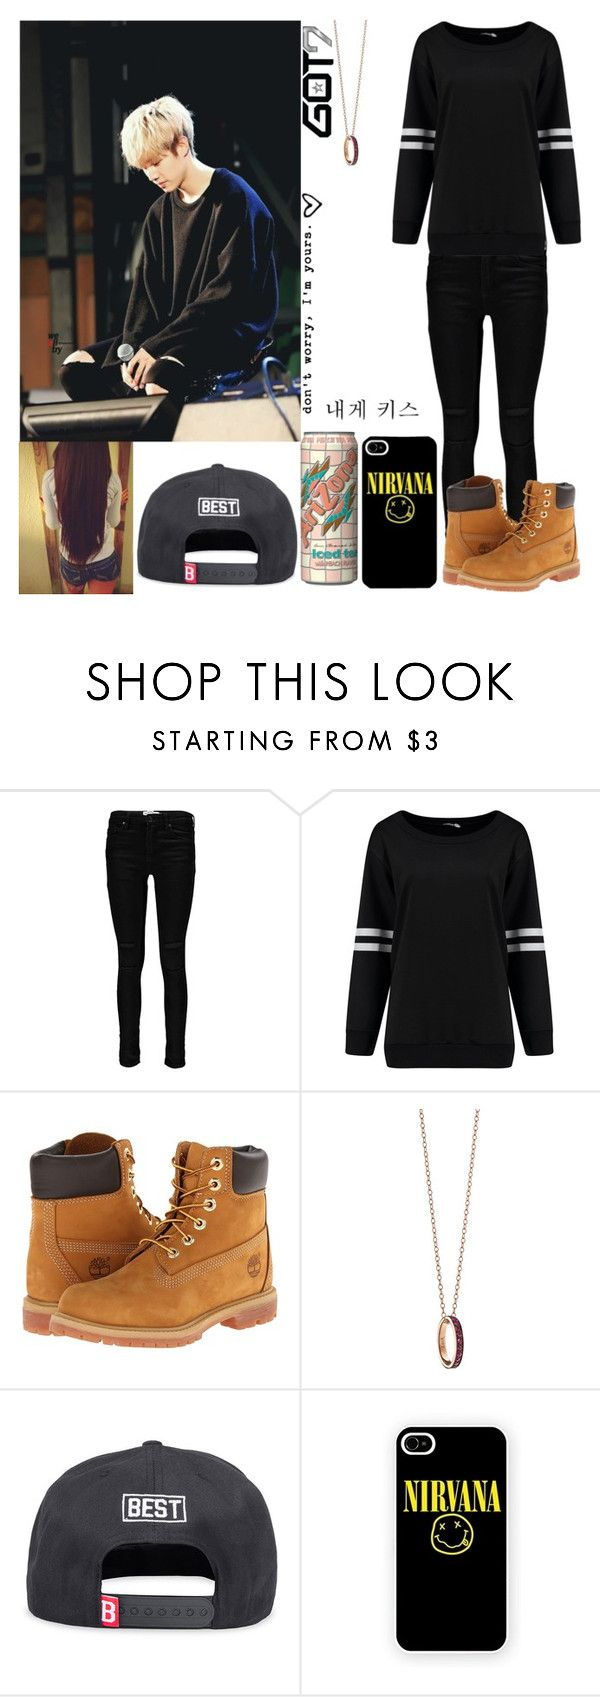 """""""#390: GOT7 - See The Light (Mark)"""" by exoo ❤ liked on Polyvore featuring Boohoo, Timberland, Monica Rich Kosann and Best"""